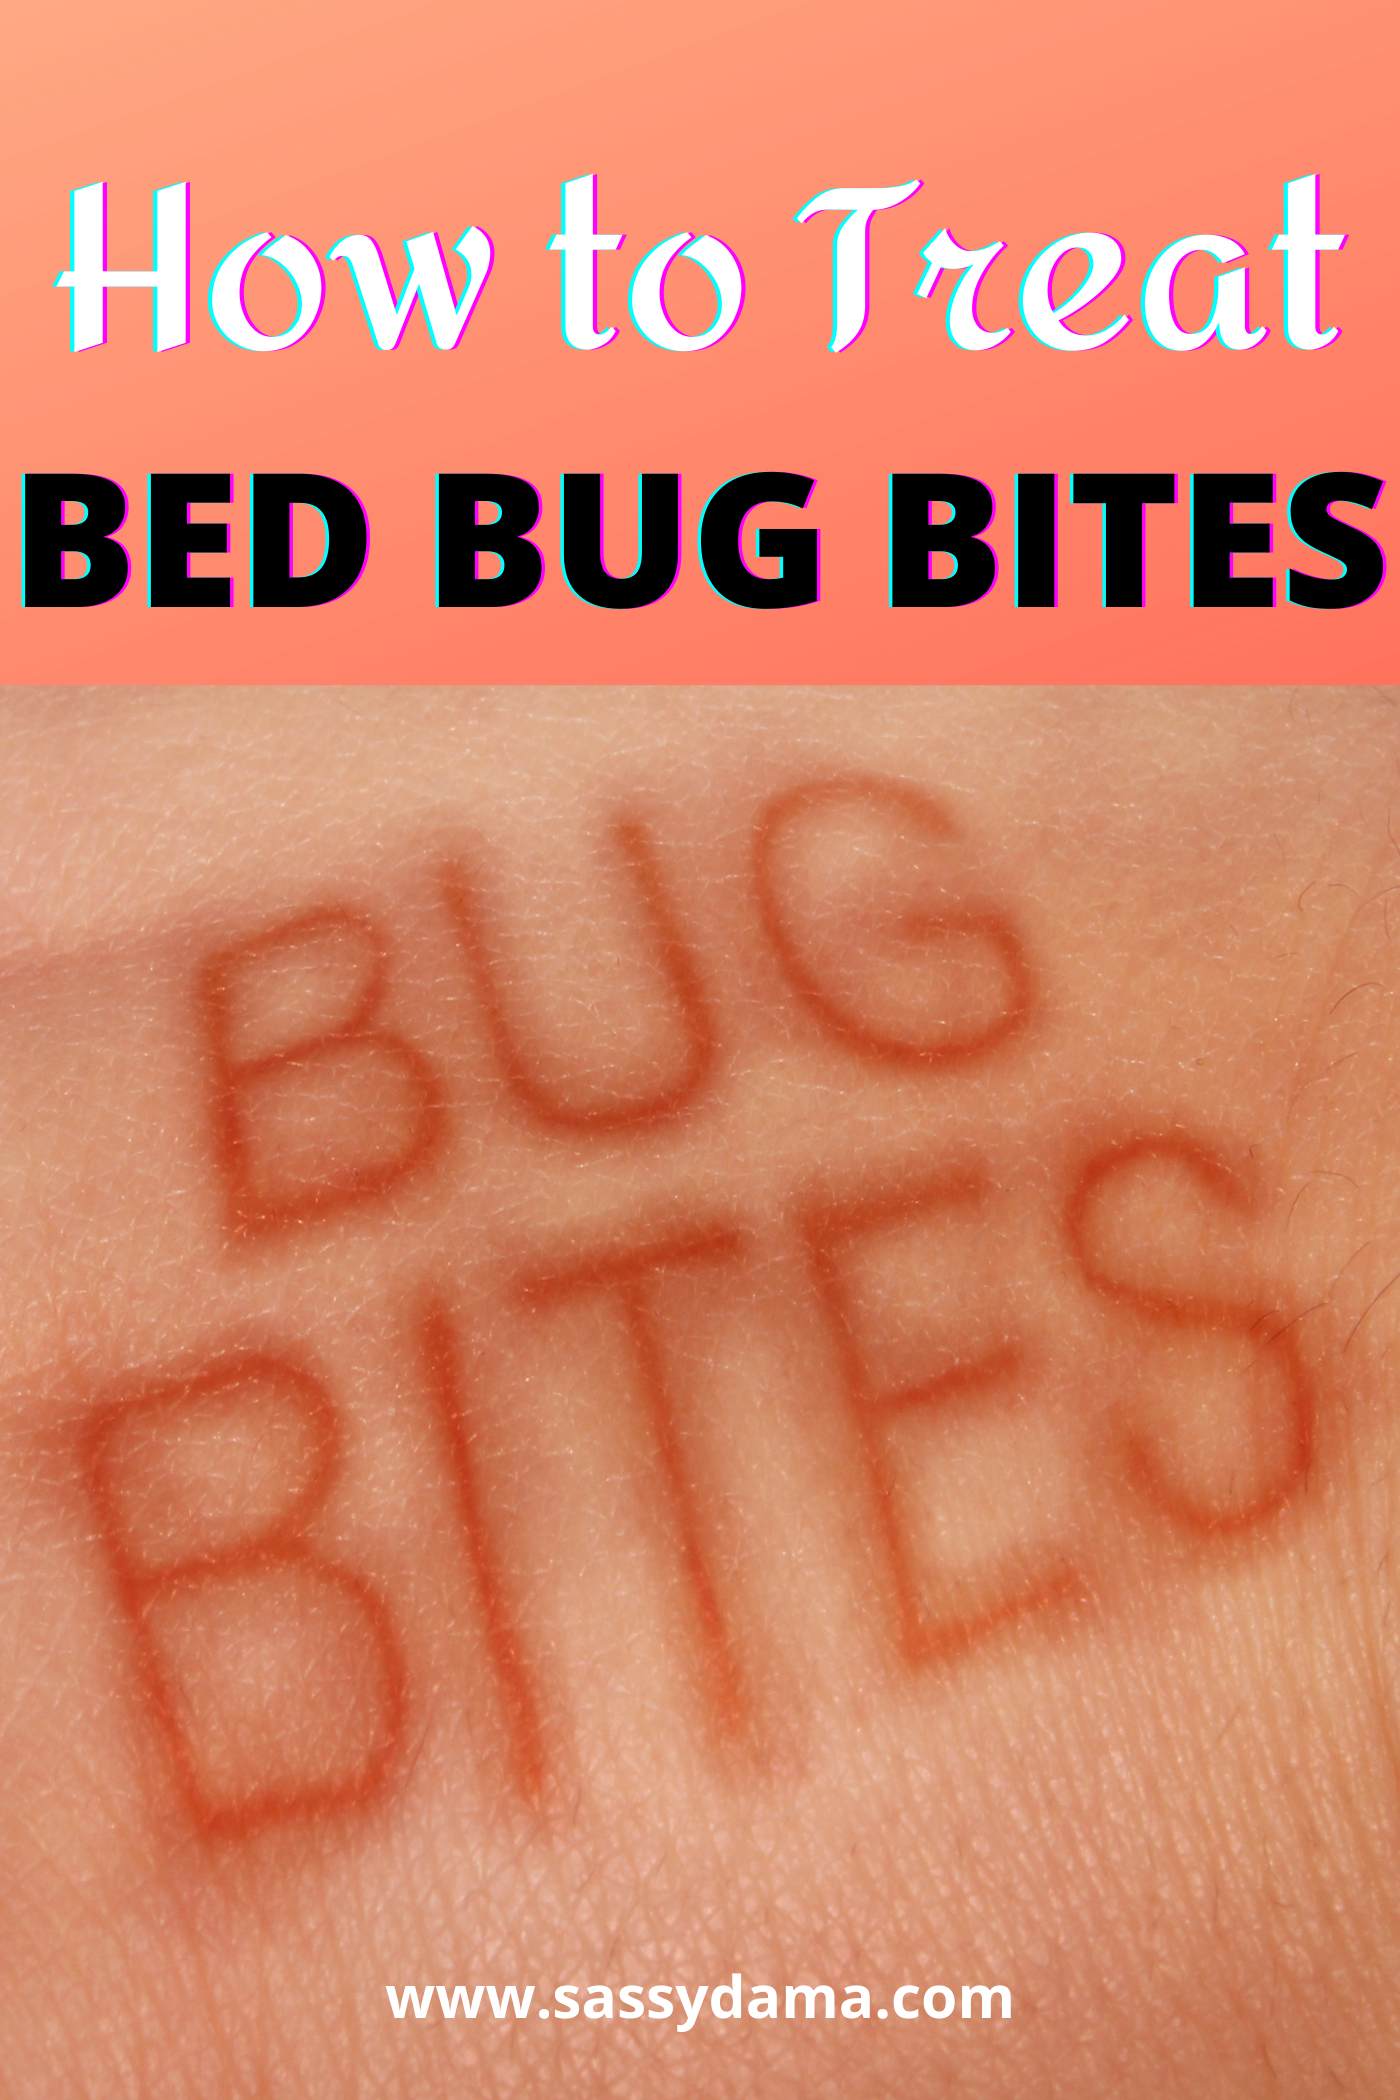 Home Remedies How to Treat Bed Bug Bites in 2020 Bed